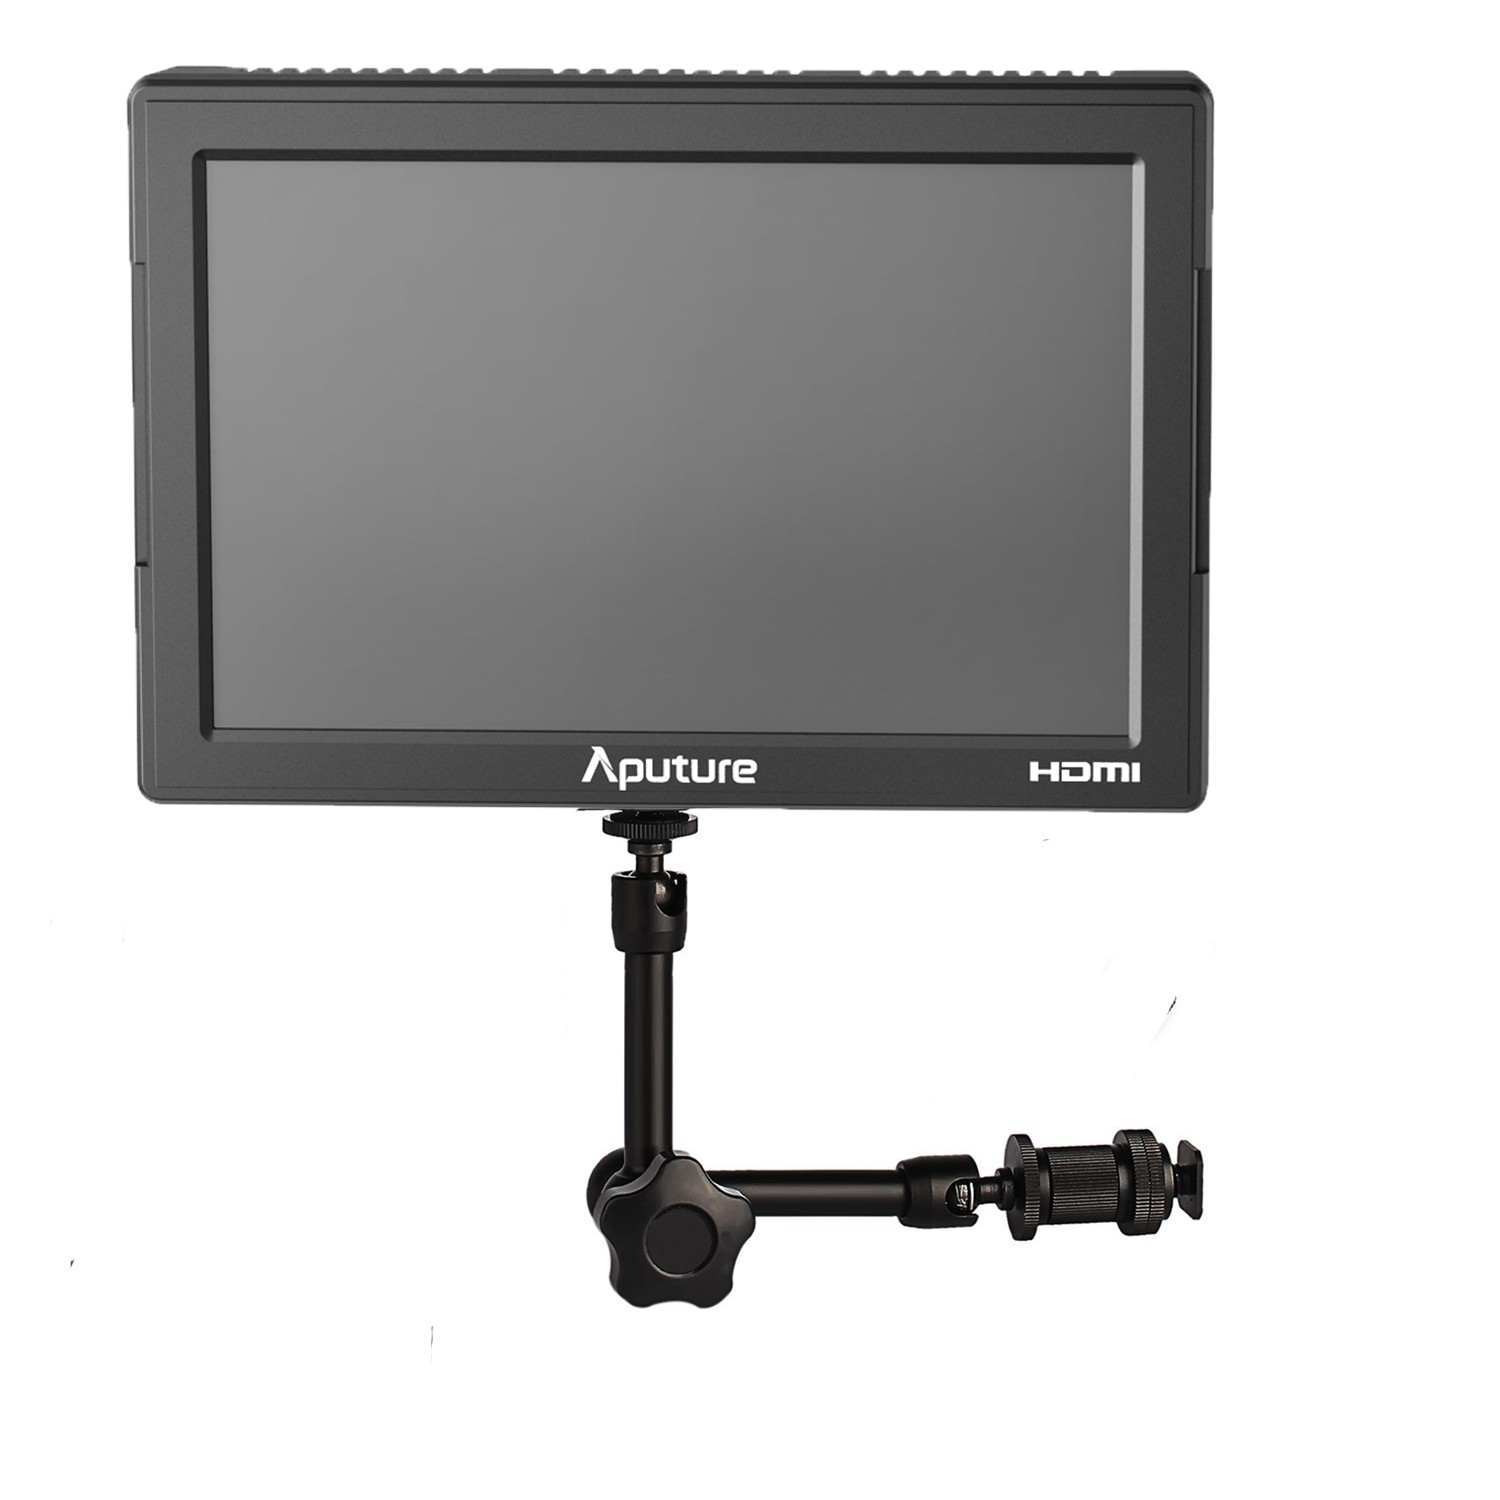 Aputure VS-5 HD-SDI HDMI 1920*1200 Video Monitor + 7 inch Magic Arm for Sony Canon Nikon DSLR Camera new aputure vs 5 7 inch 1920 1200 hd sdi hdmi pro camera field monitor with rgb waveform vectorscope histogram zebra false color